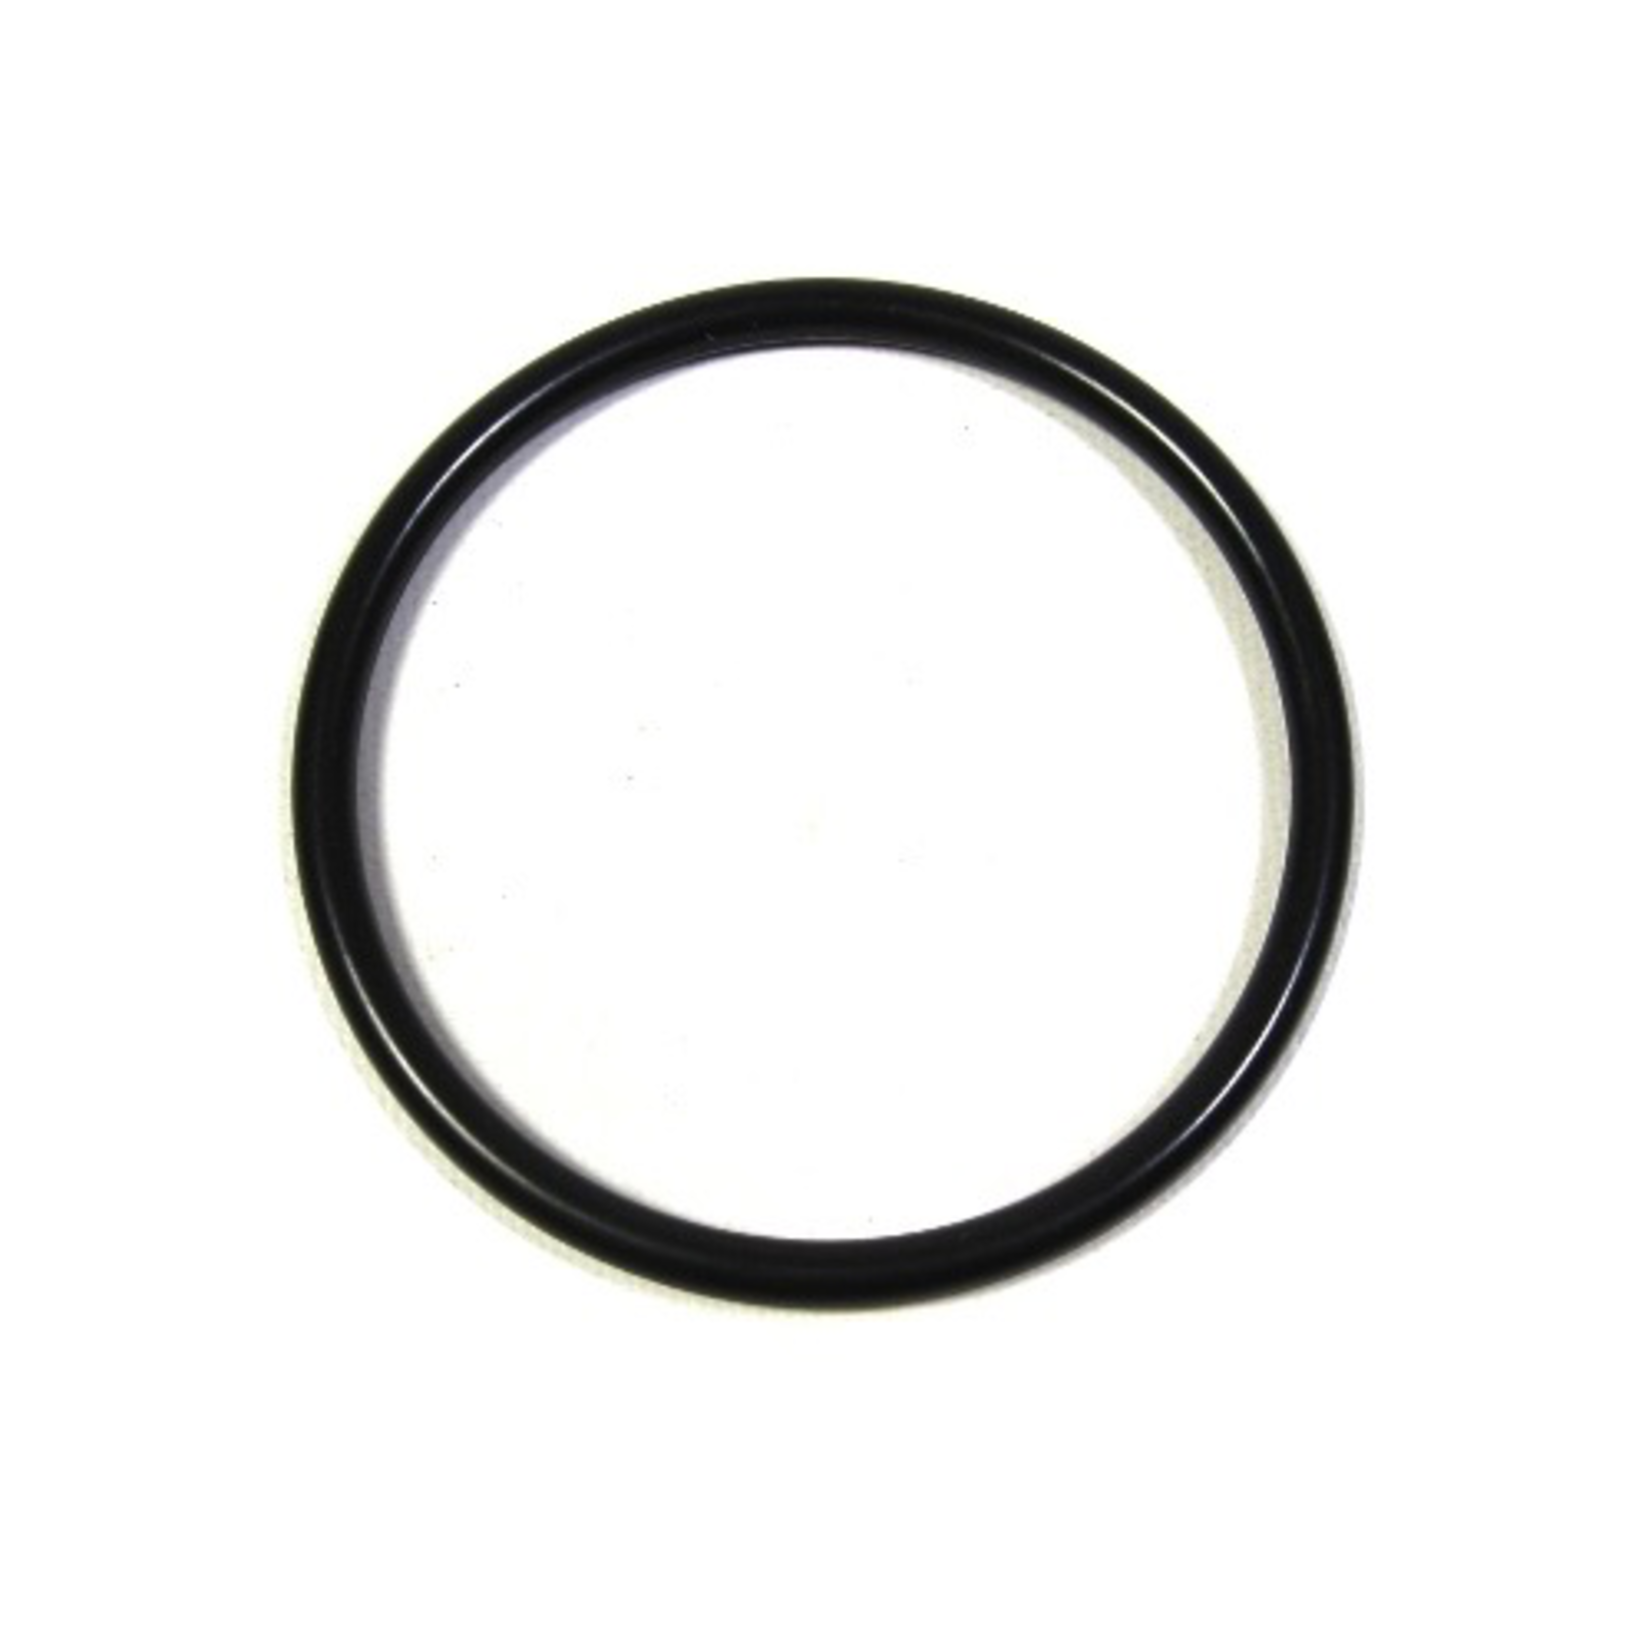 Parts Oring, BV350 Oil Filter Cover 53x 3.0 Using 3 Screw Cover (855706)